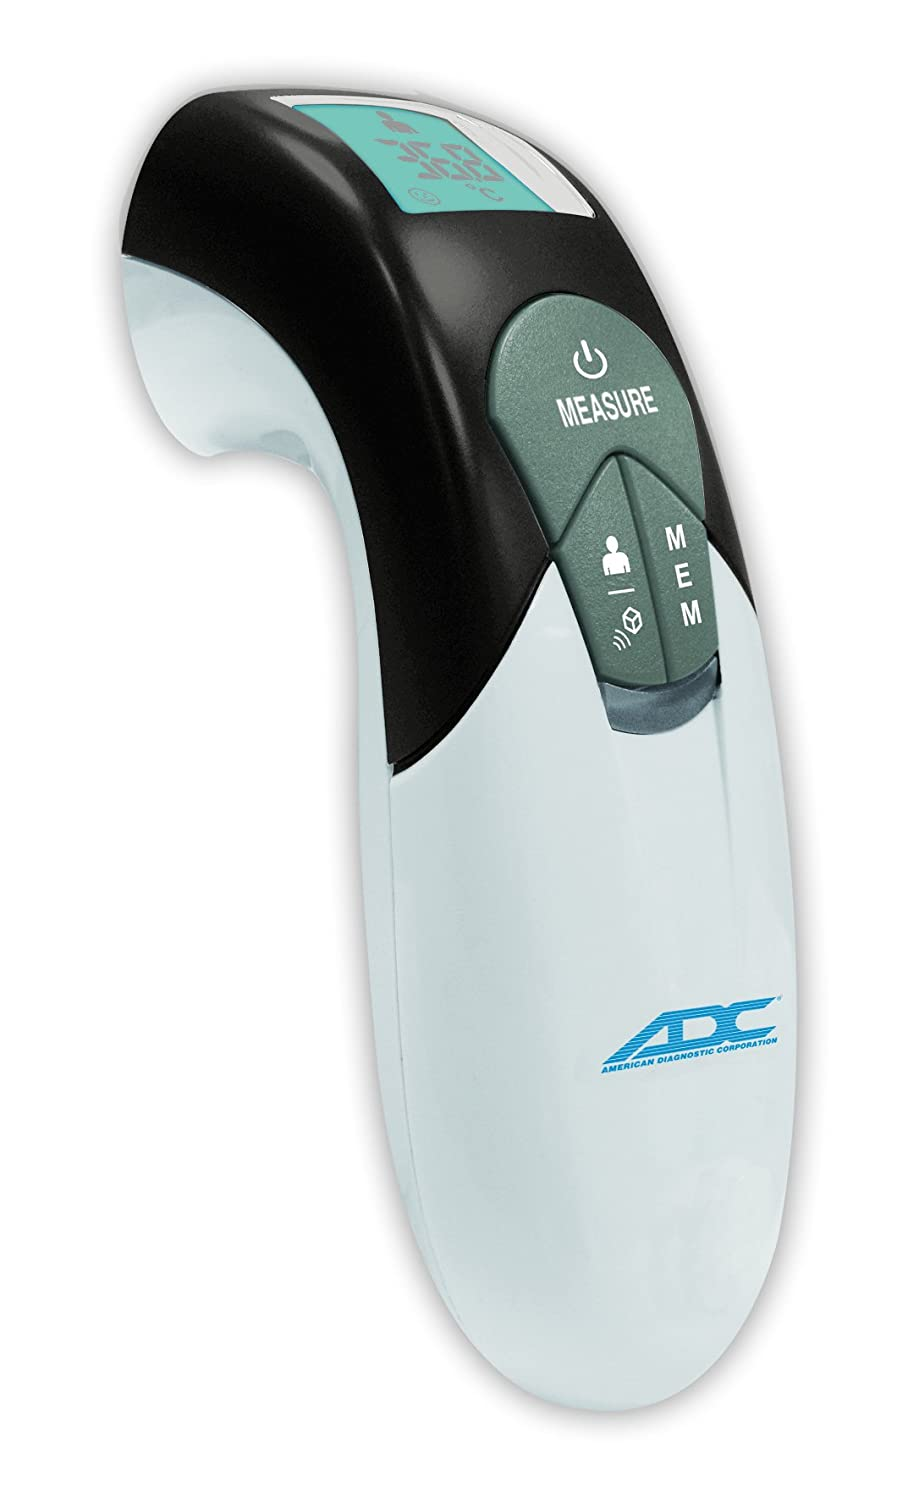 ADC Non Contact Infrared Thermometer, Adtemp 429